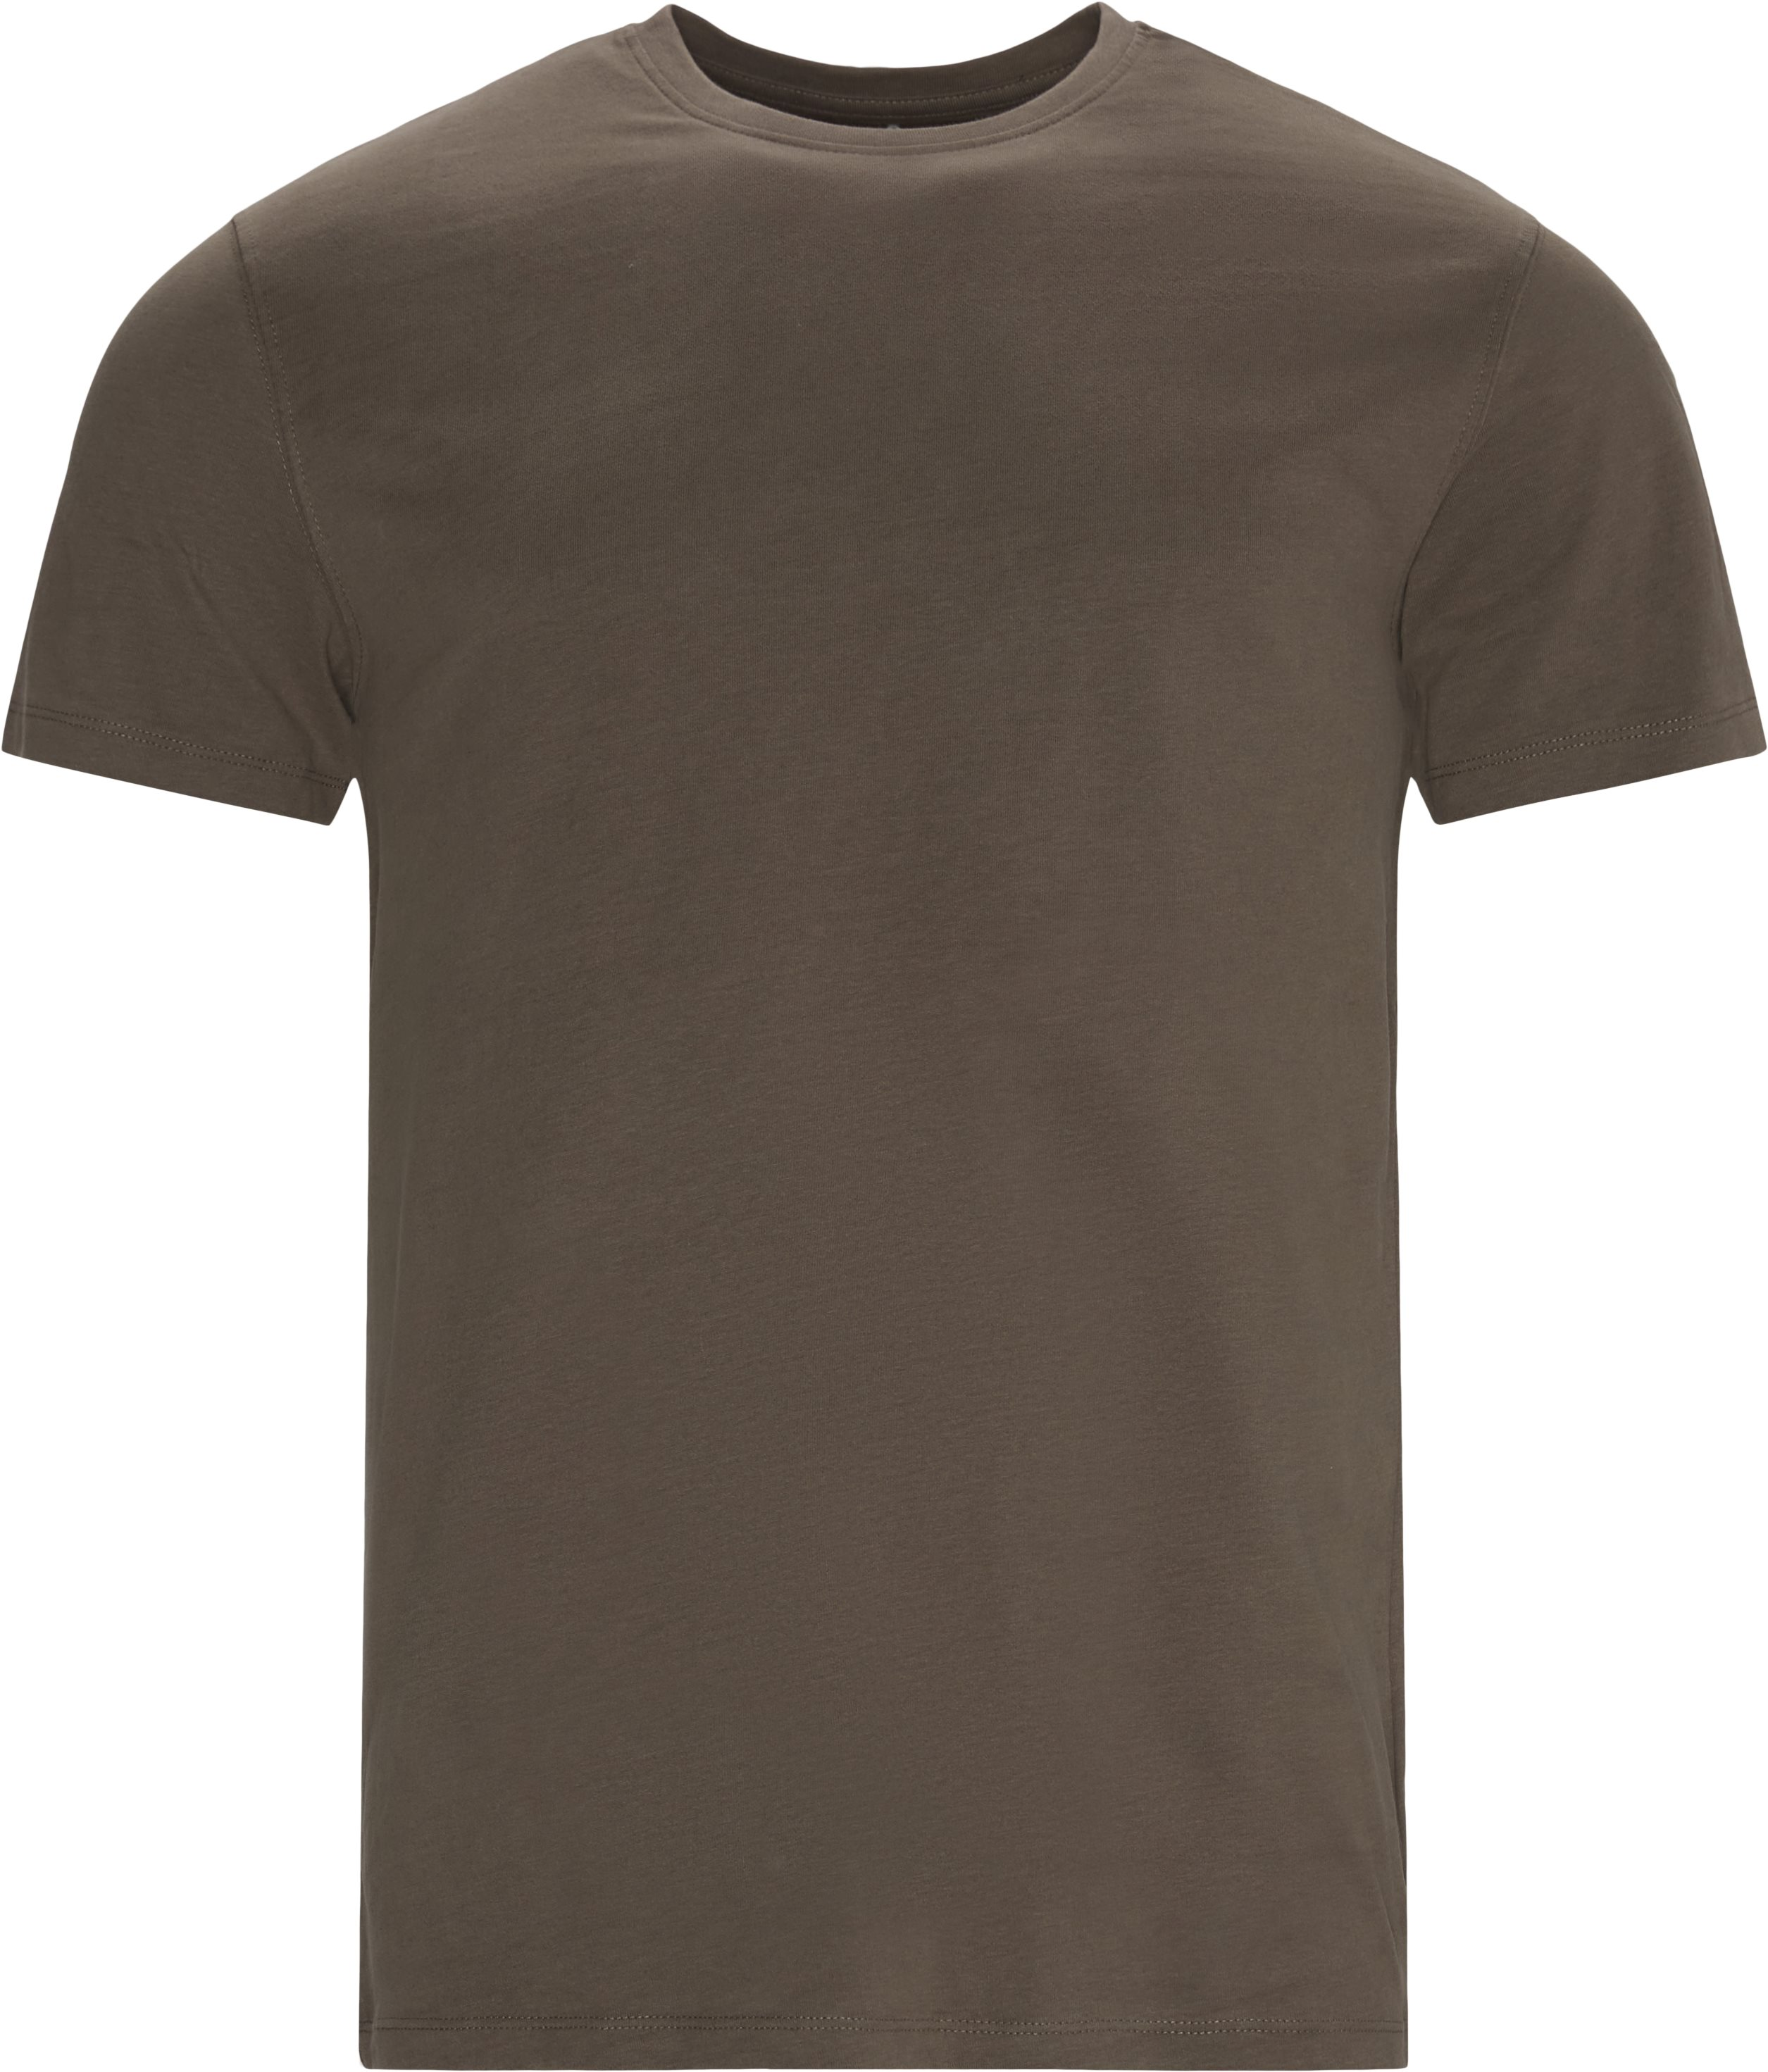 Brandon Crew Neck Tee - T-shirts - Regular - Army